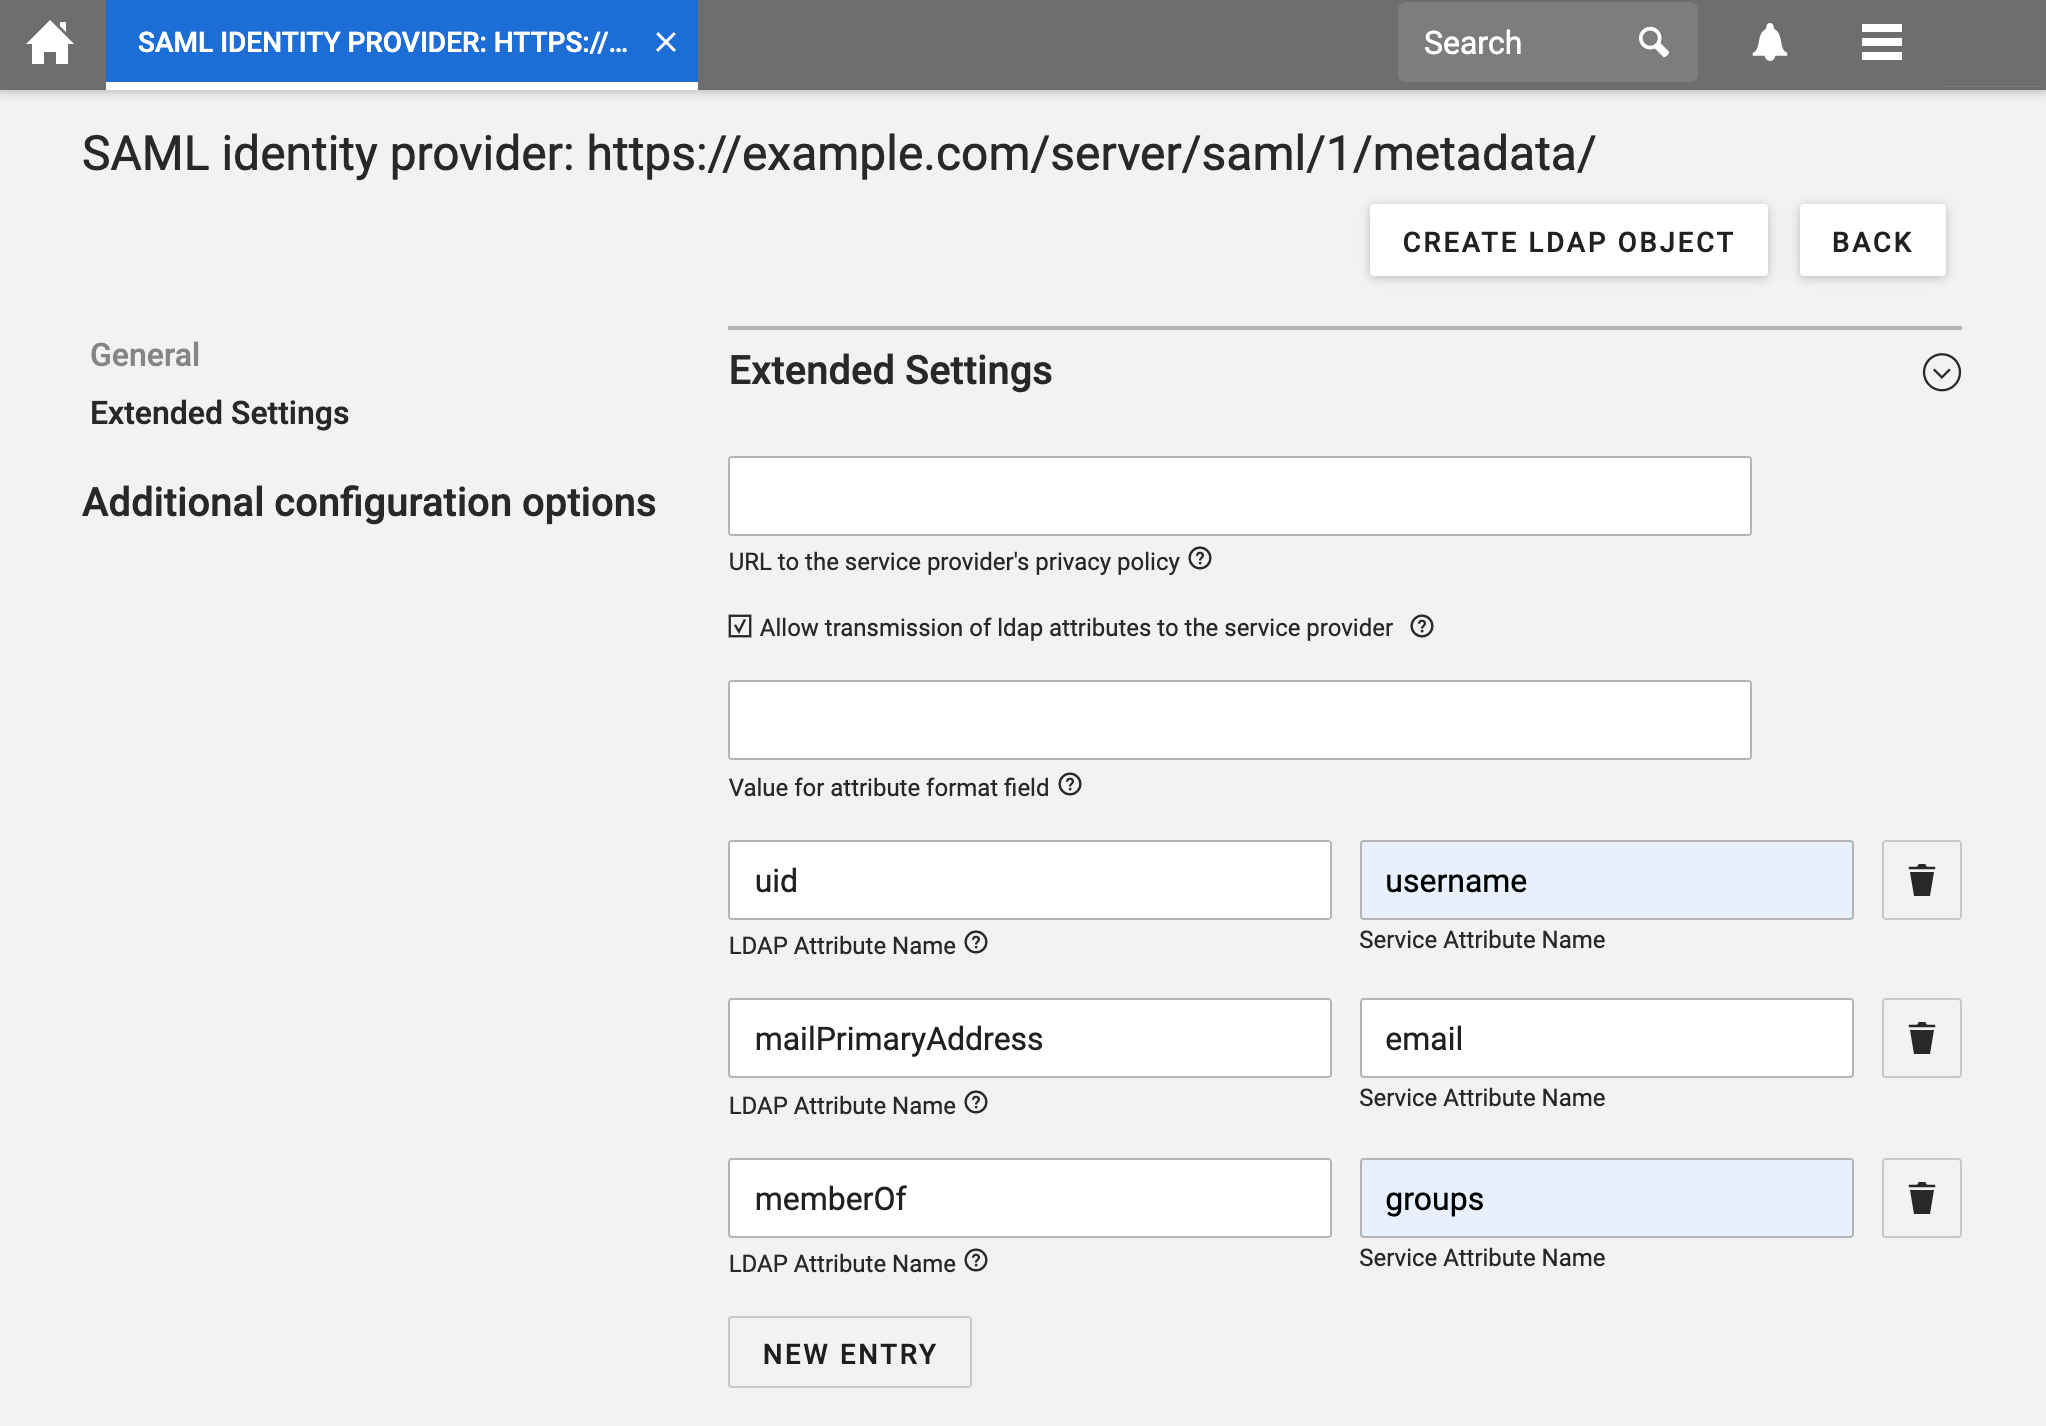 Switch to Extended Settings and fill out the LDAP mapping information